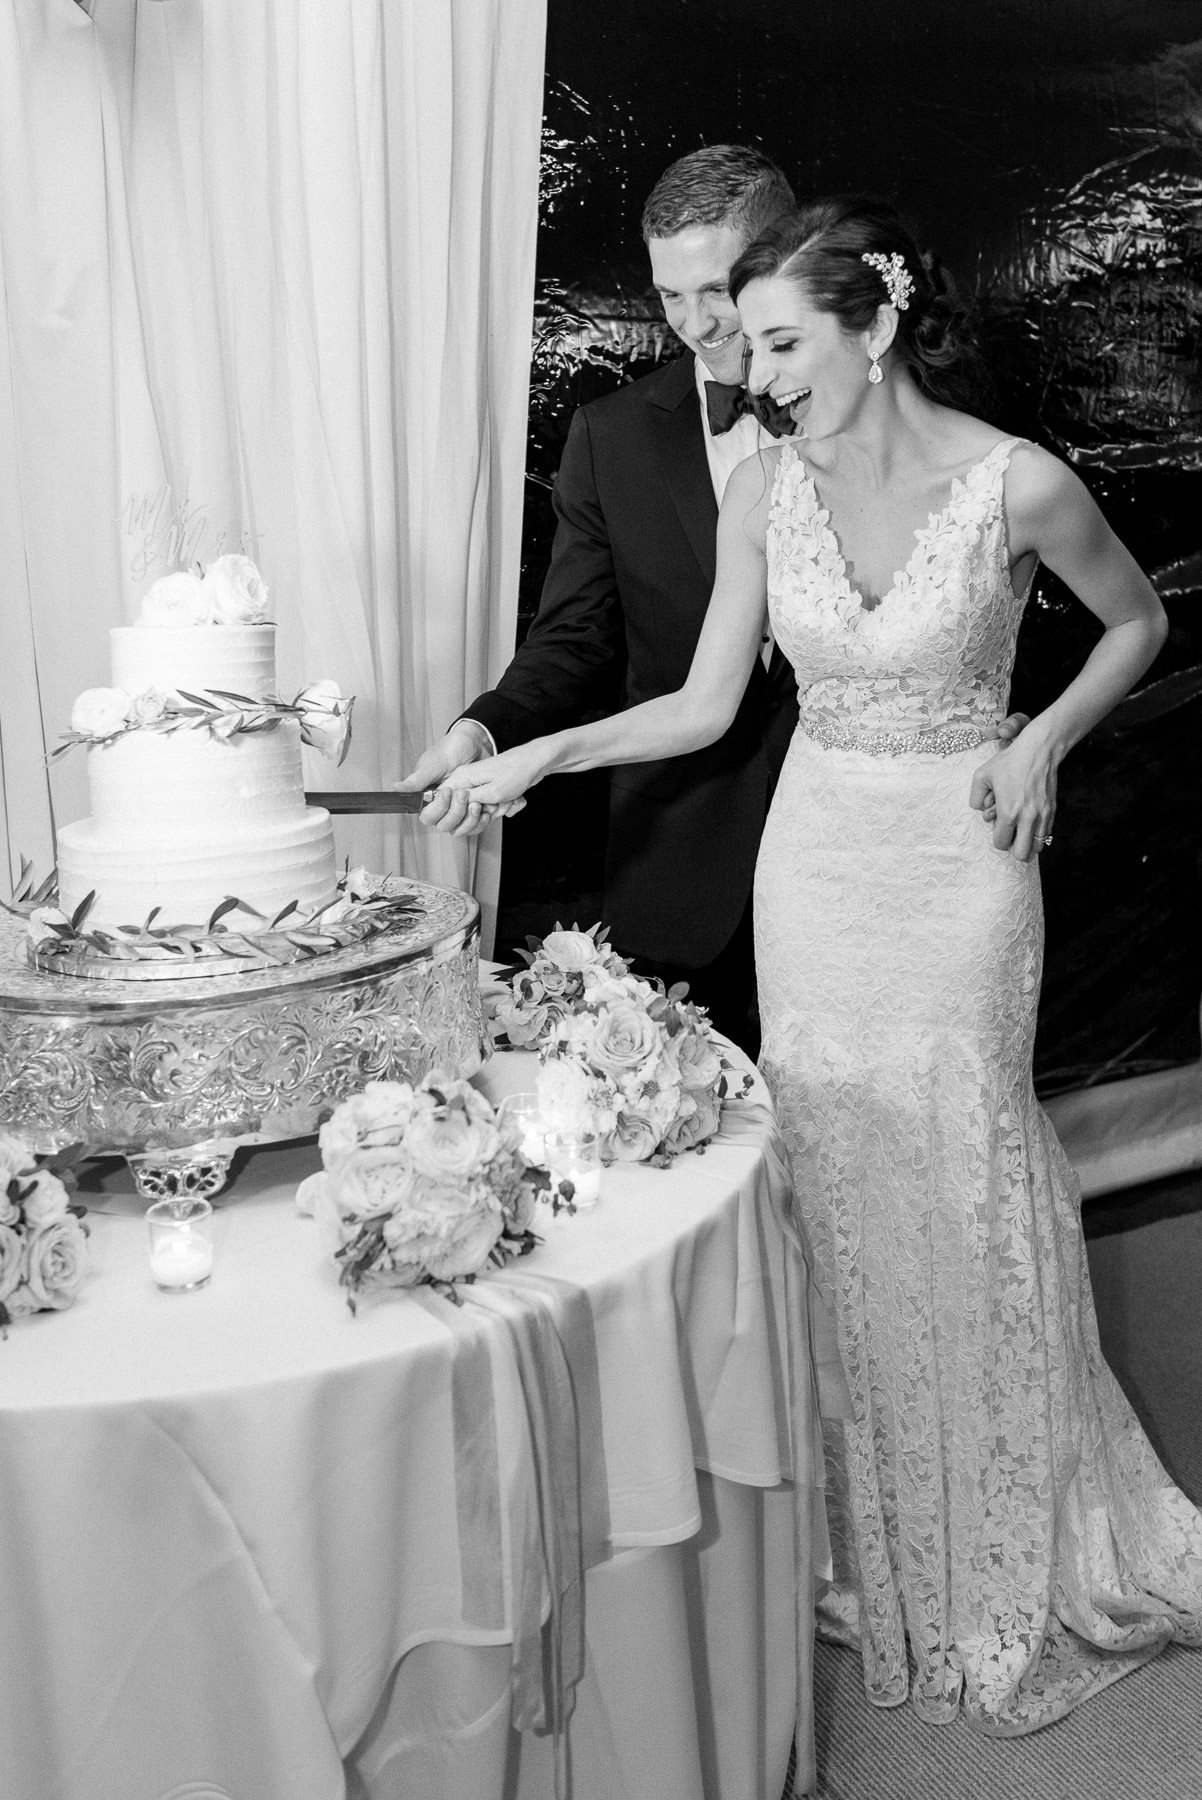 Black and White Cake Cutting Photo